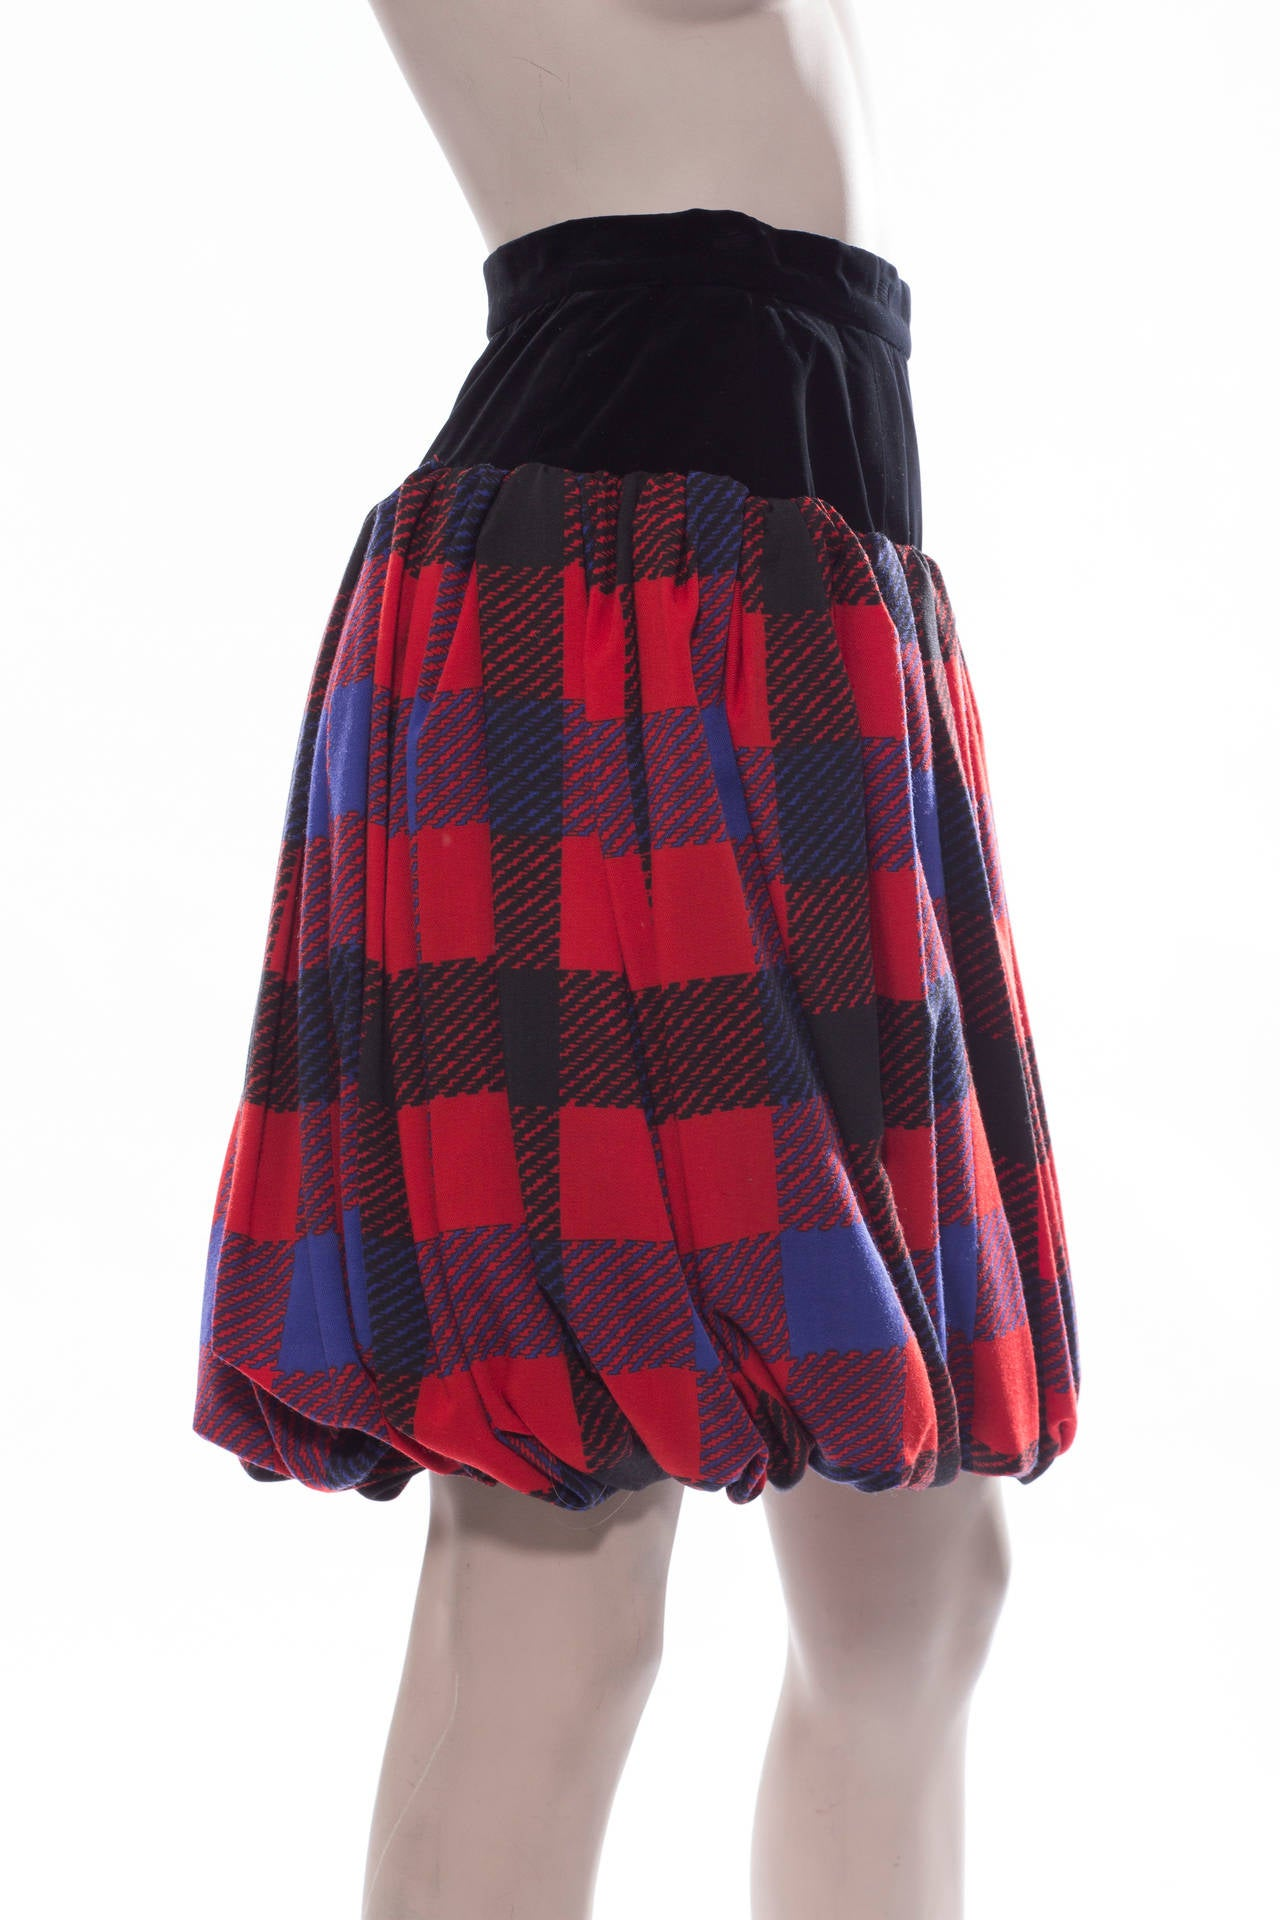 Yves Saint Laurent Rive Gauche plaid wool jersey and black velvet bubble skirt with side zip and fully lined. EU.size 38